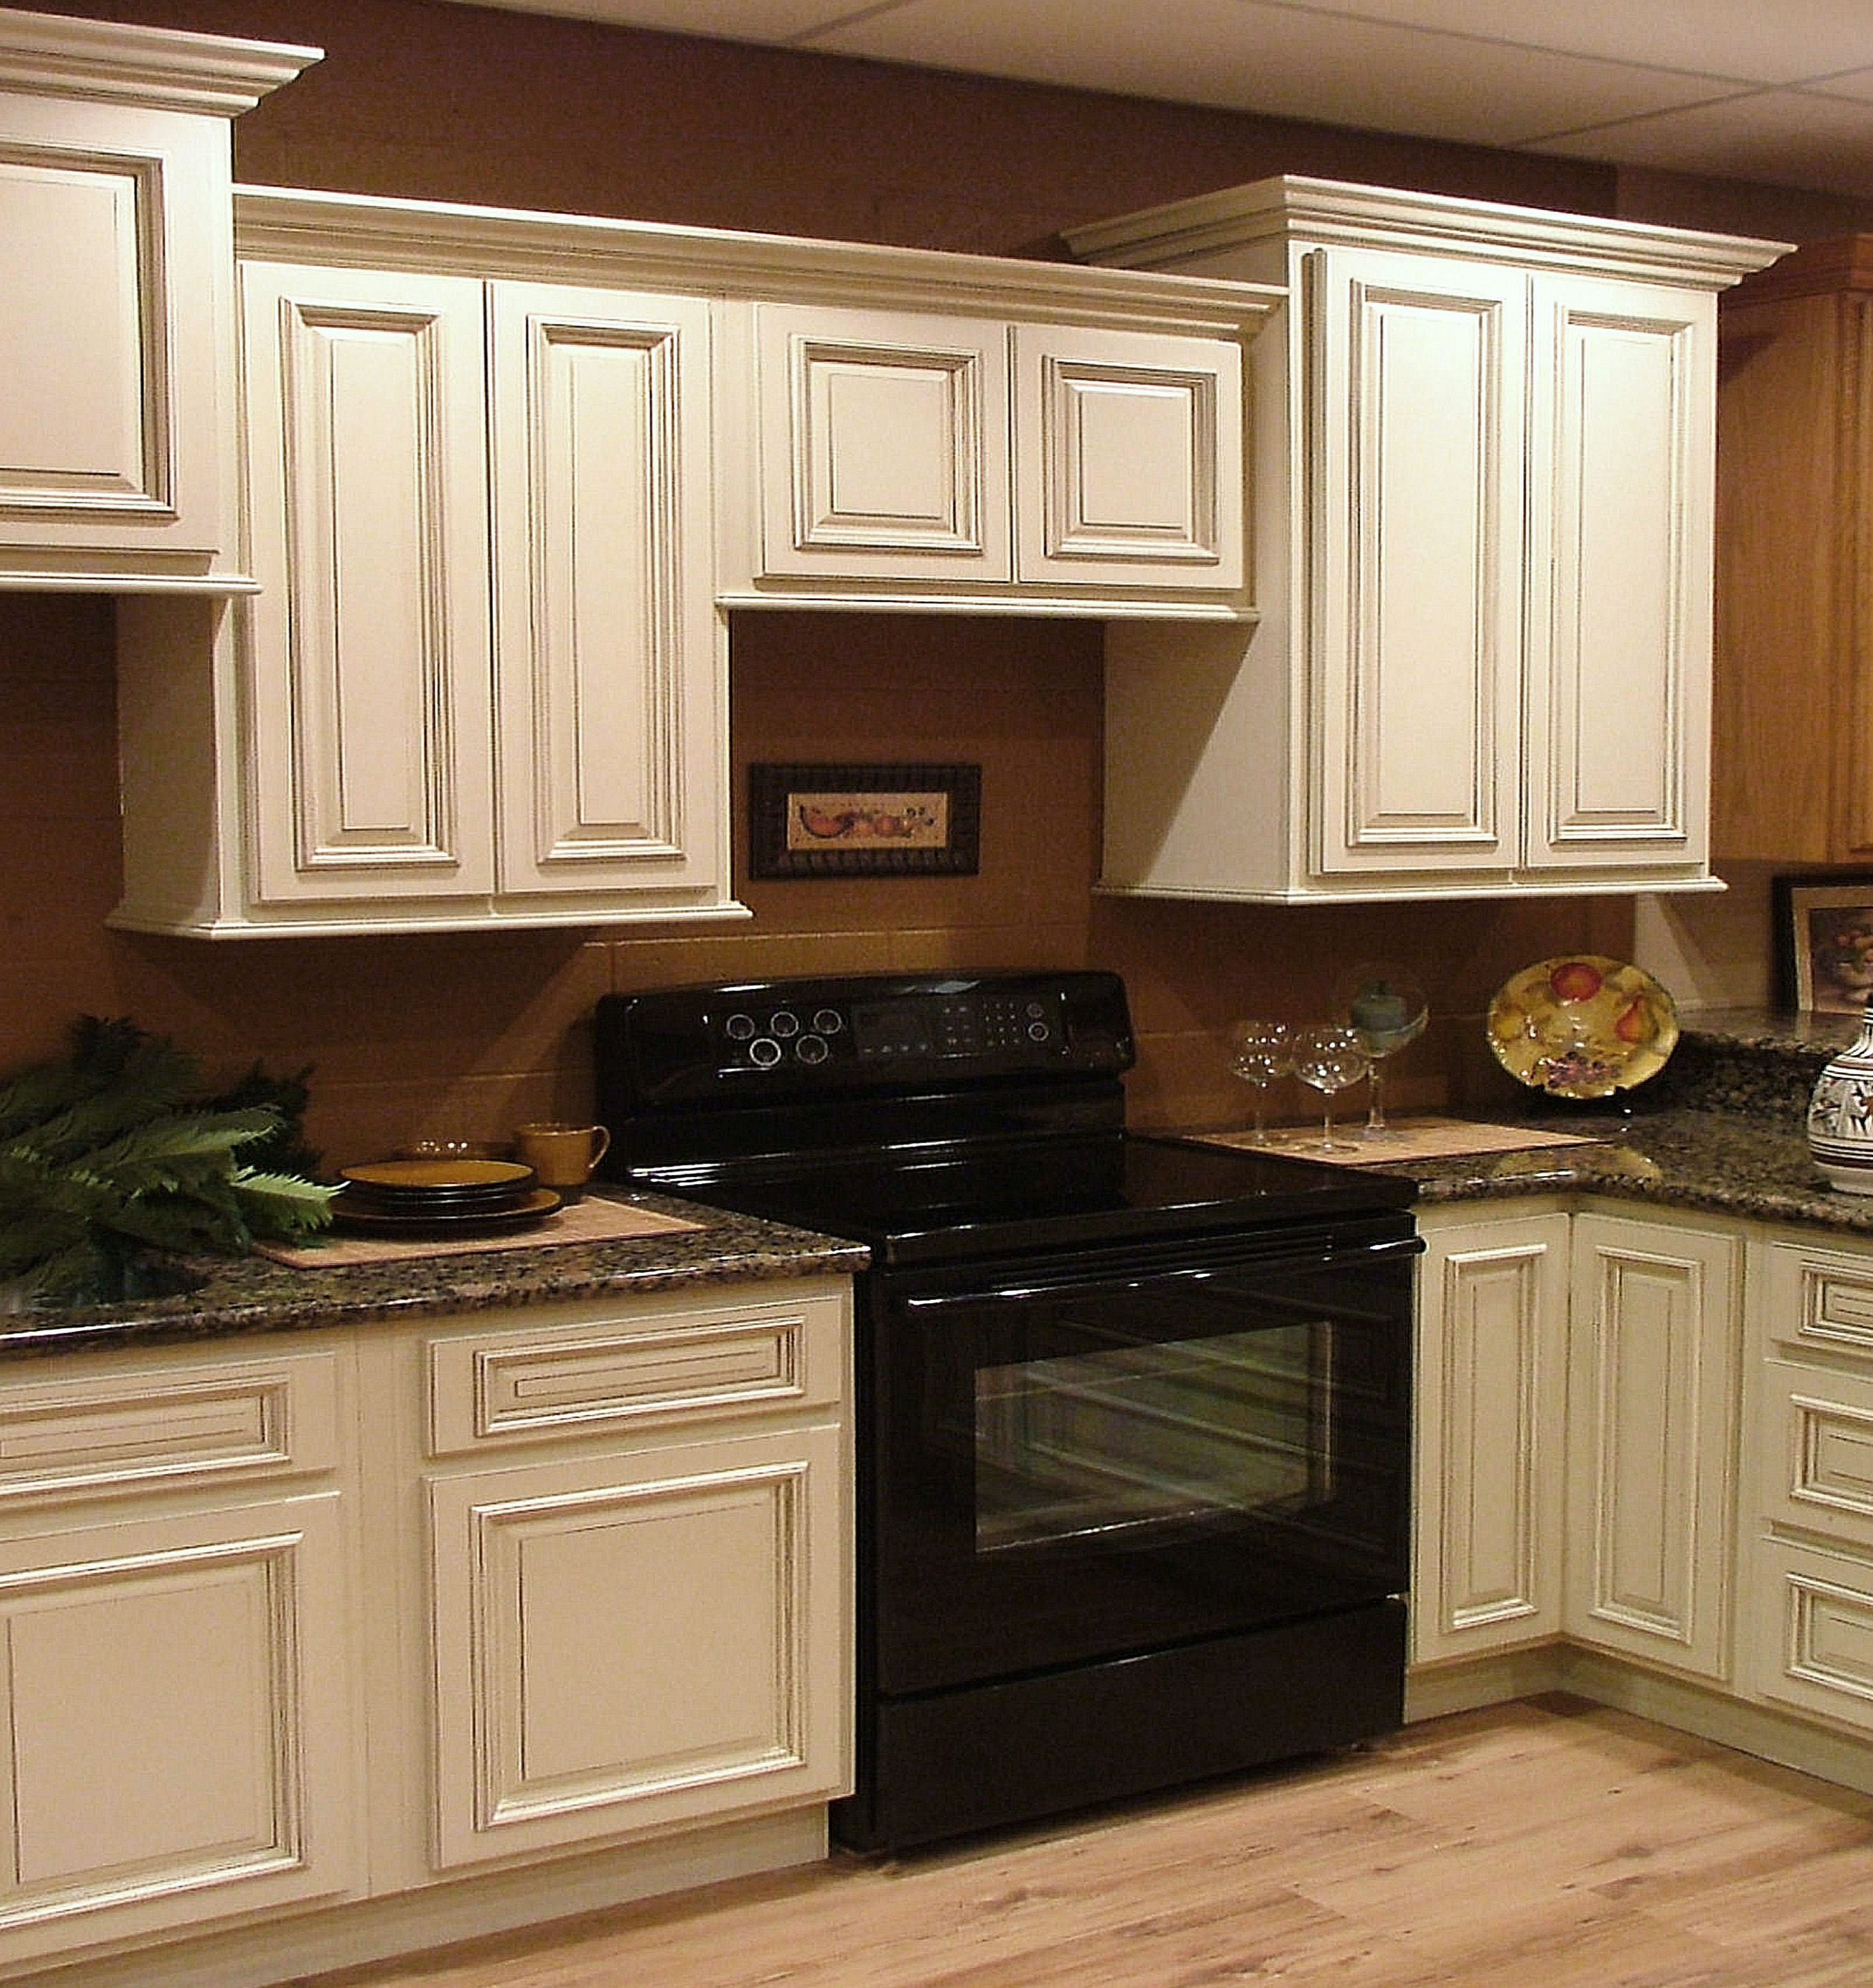 antique white kitchen cabinets with black appliances, Wonderful Wooden Antique White Cabinets As Kitchen